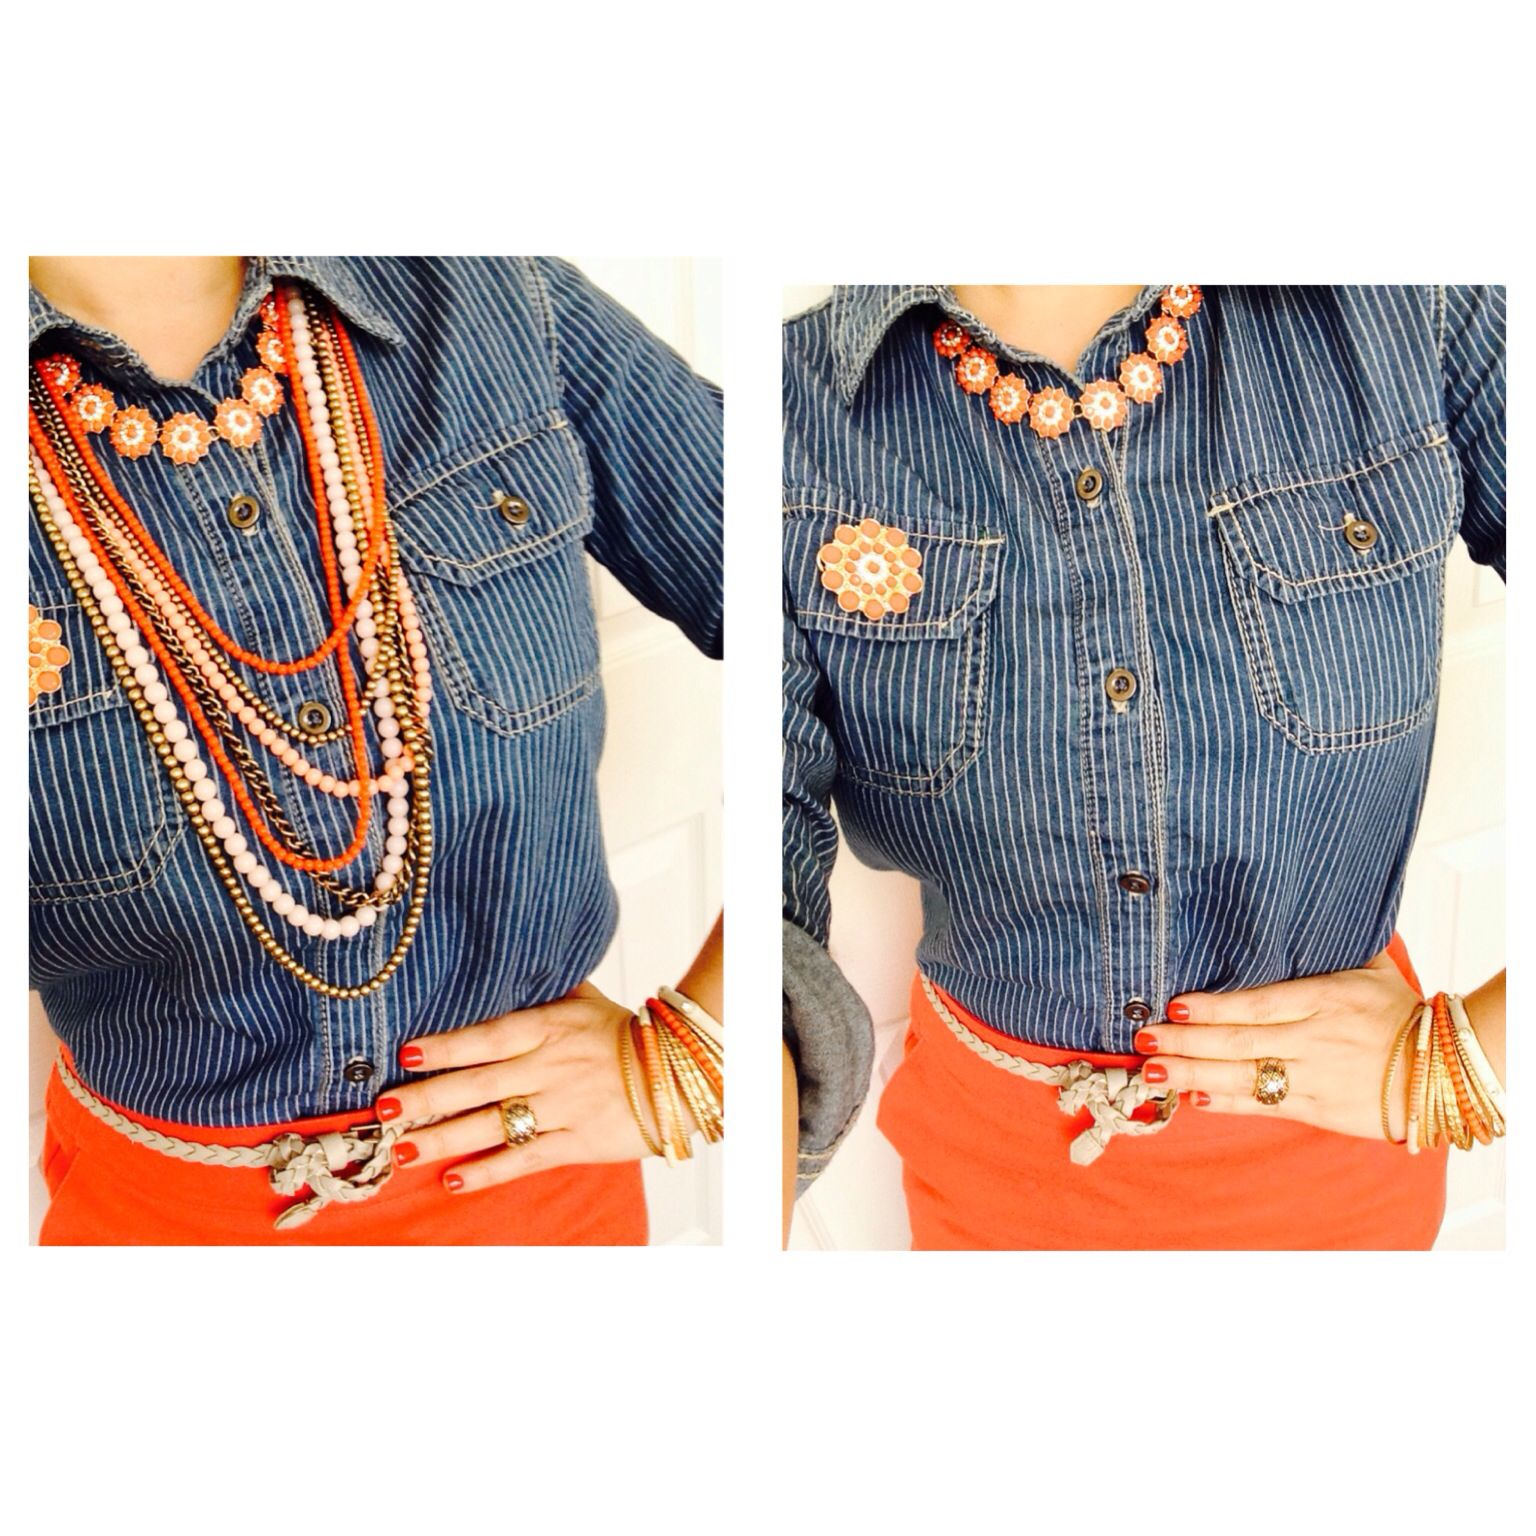 Peachy keen, creme bruelle, papaya, crush, denim shirt, premier designs jewelry.  Gorge!